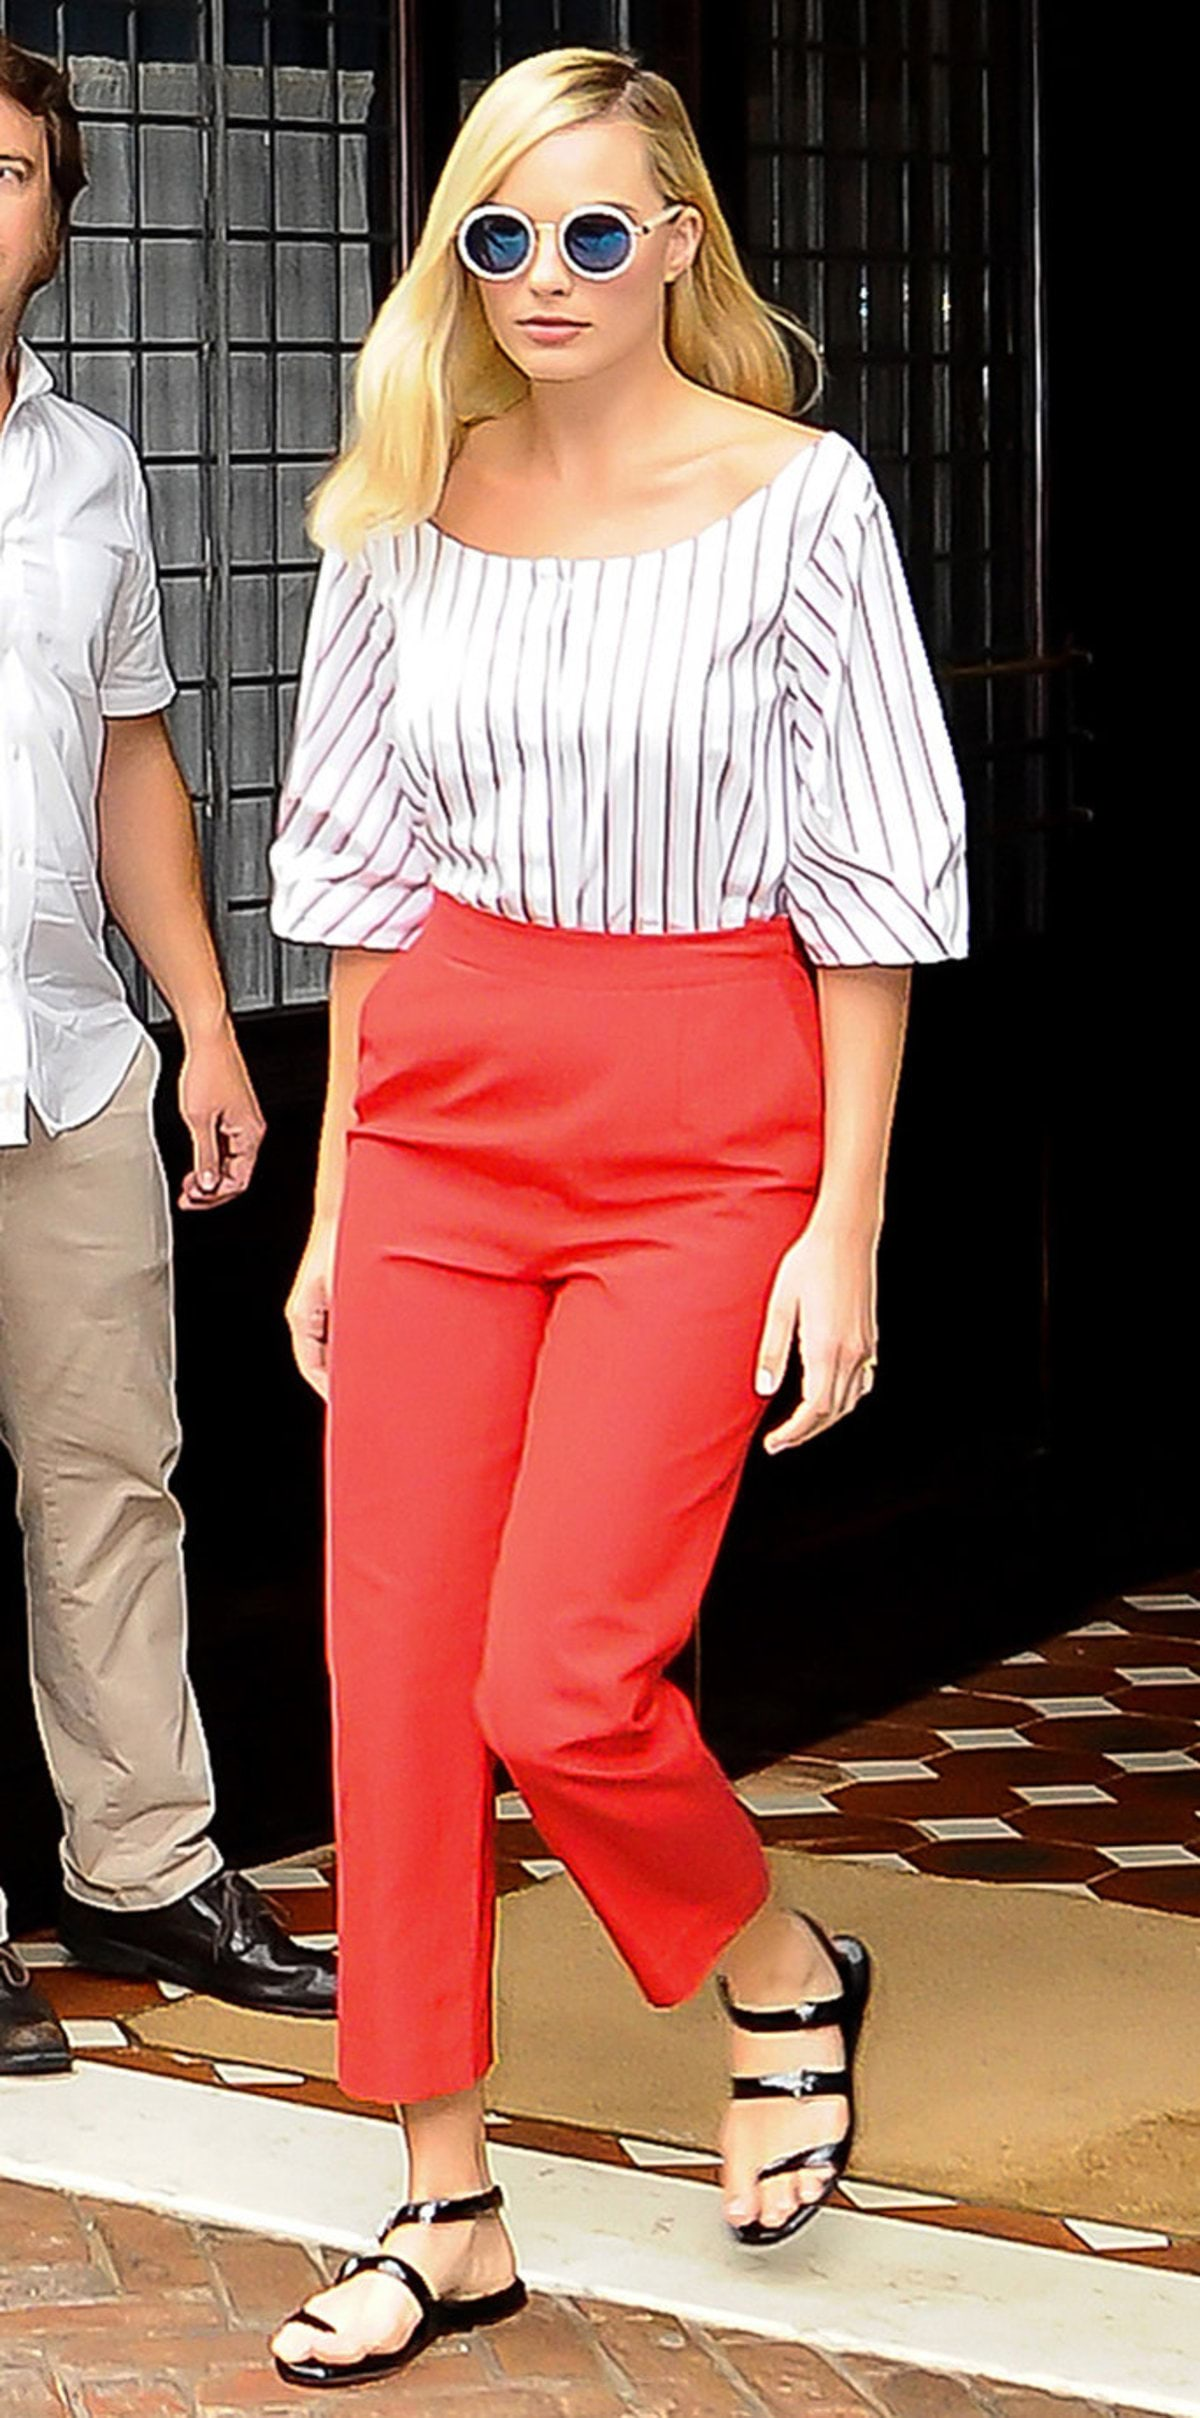 New York, NY - New York, NY - Actress Margot Robbie exits the Greenwich Hotel looking cute and casual in a stripe blouse with red capri trousers, strap sandals and cool pair of blue mirrored sunglasses. AKM-GSI July 29, 2016 To License These Photos, Please Contact: Maria Buda (917) 242-1505 mbuda@akmgsi.com sales@akmgsi.com or Mark Satter (317) 691-9592 msatter@akmgsi.com sales@akmgsi.com www.akmgsi.com AKM-GSI 29 JULY 2016 To License These Photos, Please Contact : Maria Buda (917) 242-1505 mbuda@akmgsi.com or Mark Satter (317) 691-9592 msatter@akmgsi.com sales@akmgsi.com